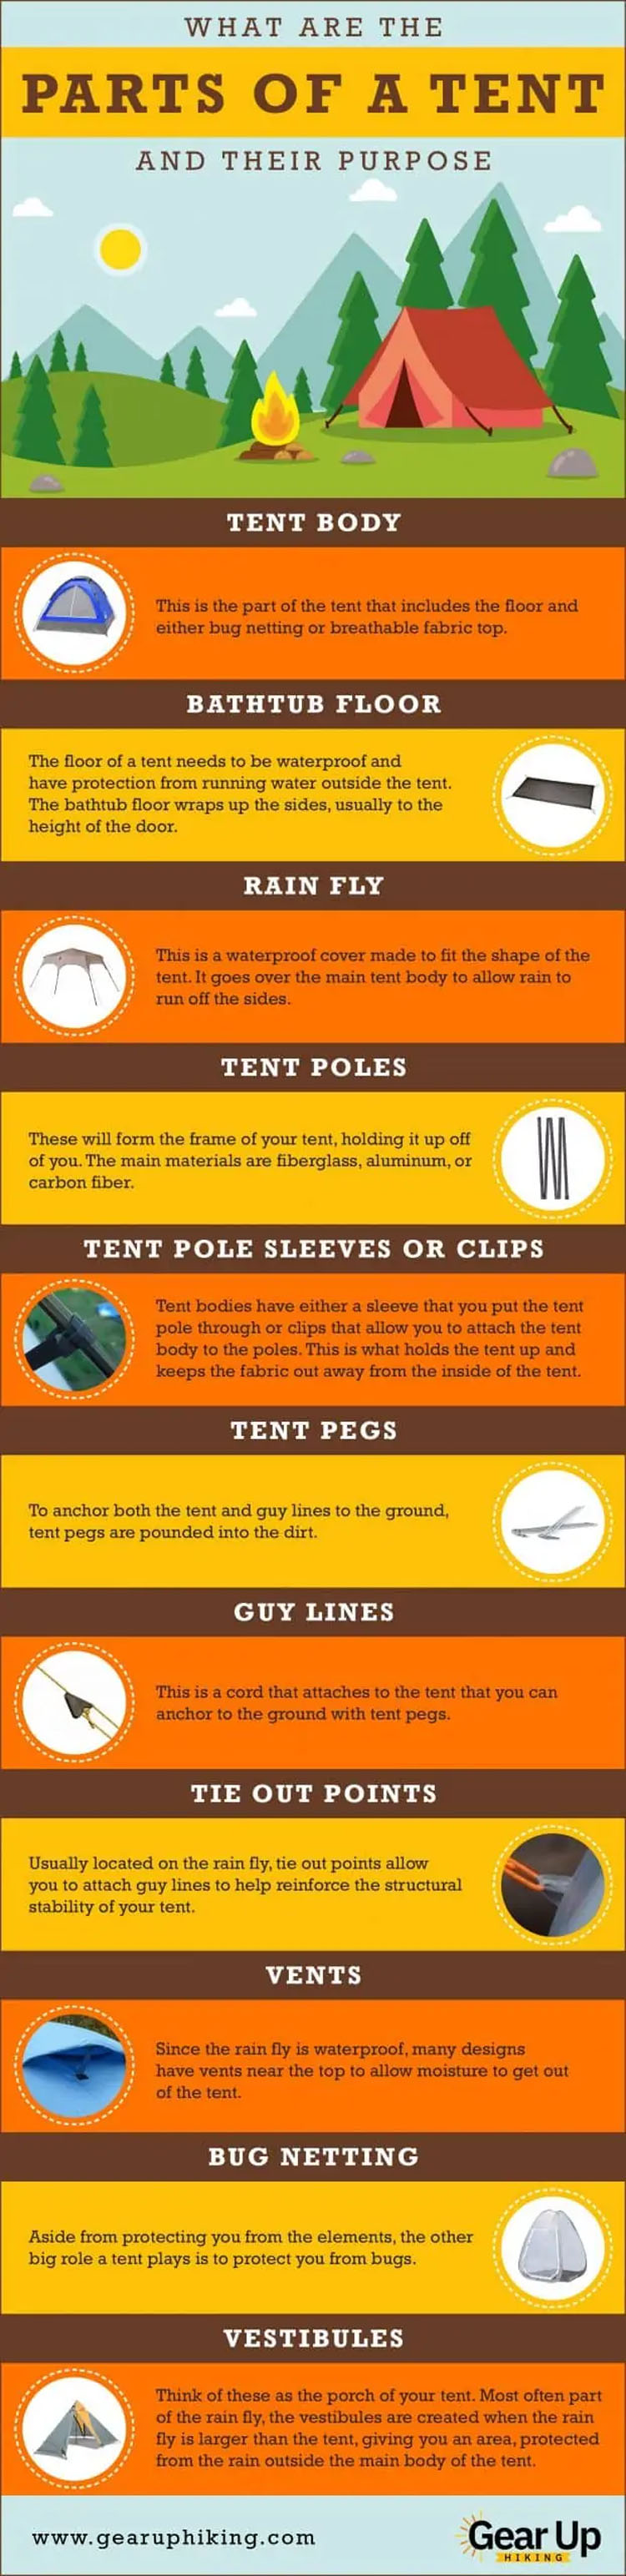 What Are the Parts Of A Camping Tent?